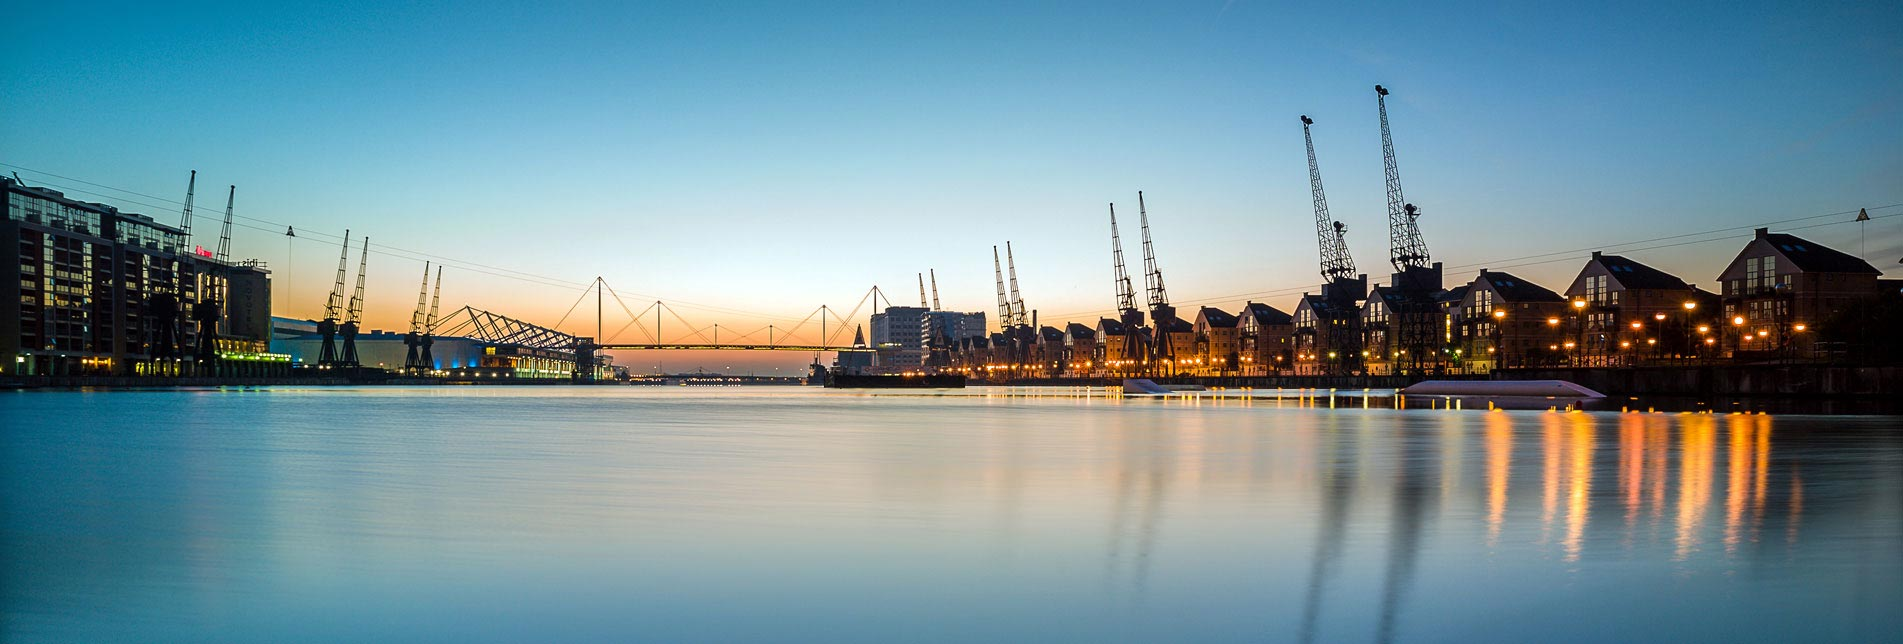 London's Royal Docks background